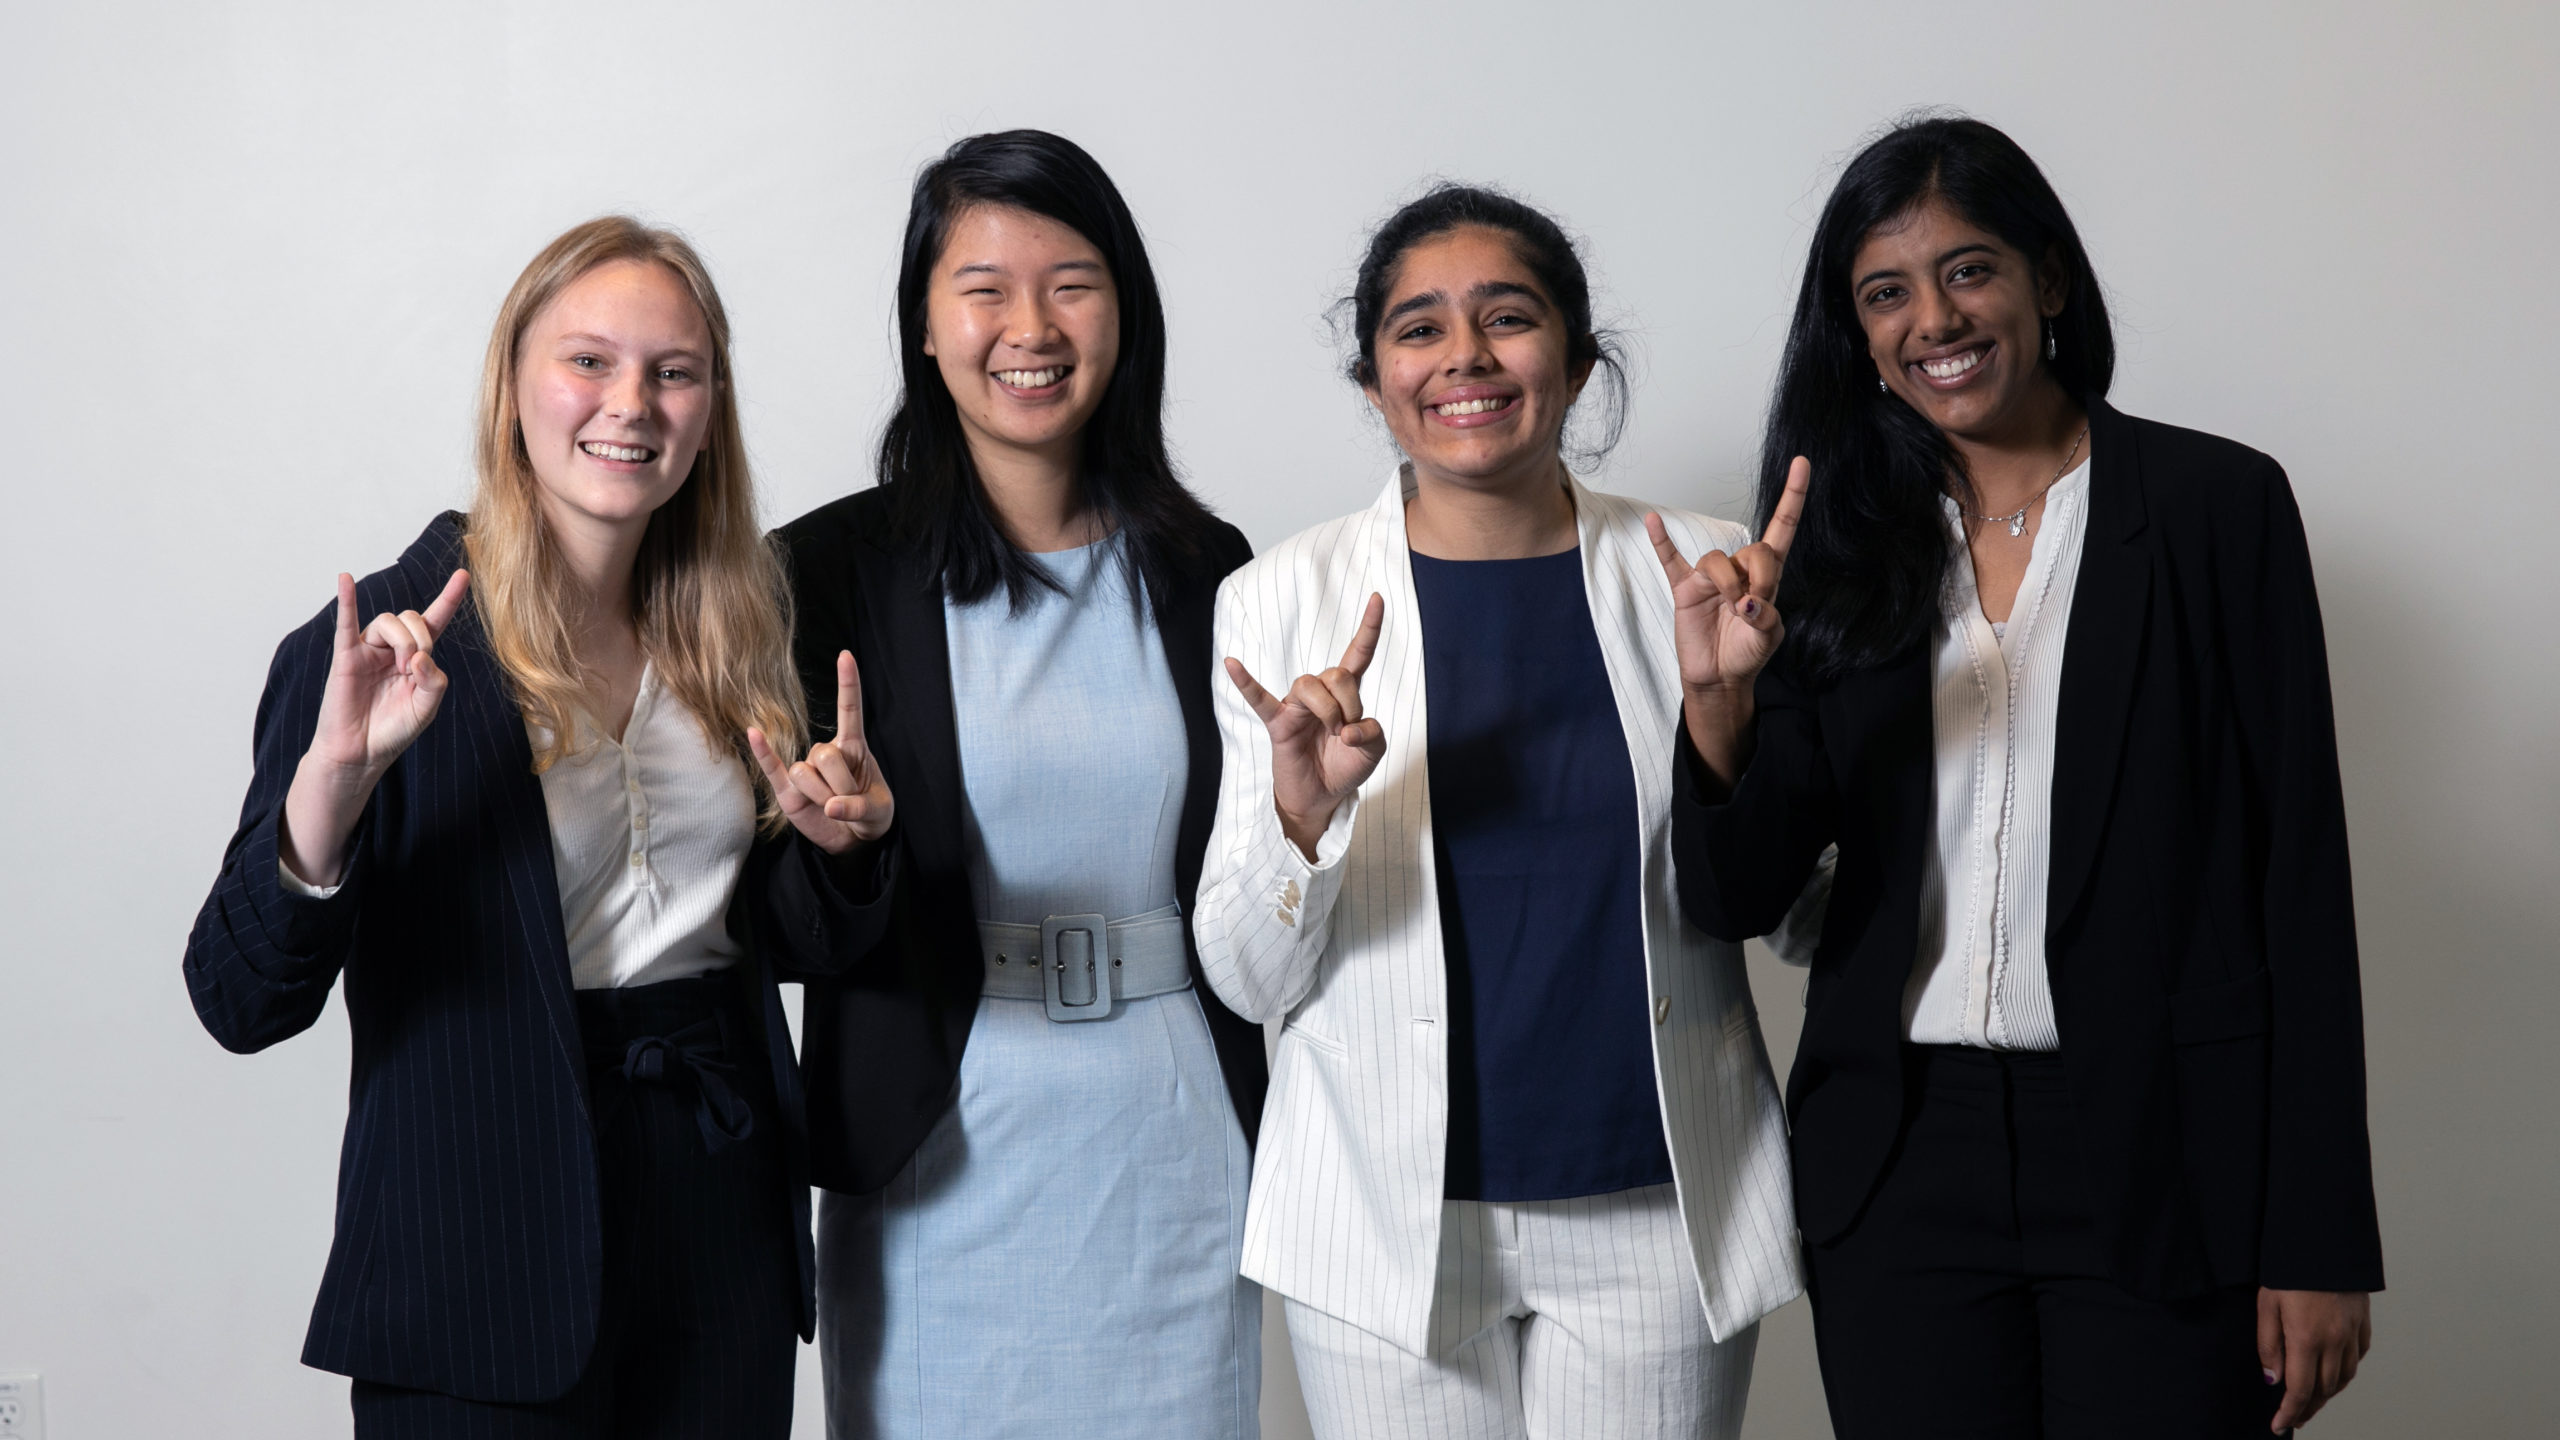 Rosaleen poses with her team after they pitched their research project